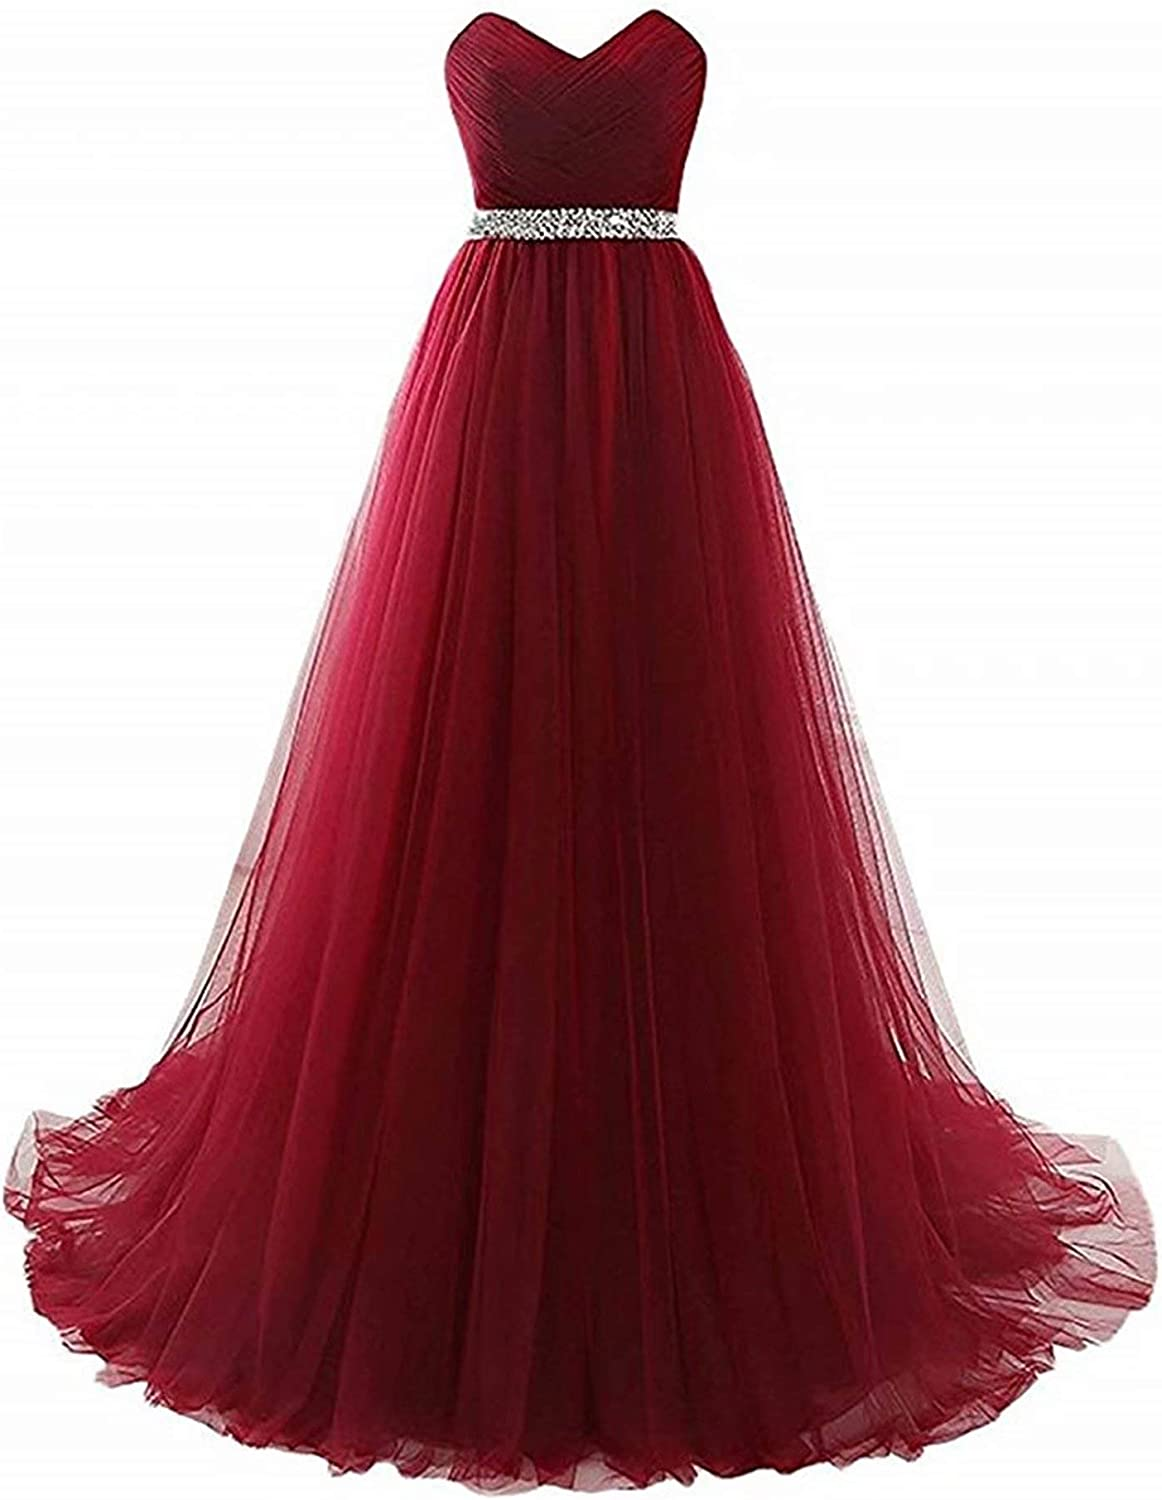 Honeywedding Women's Sweetheart Long Tulle Prom Dresses Maxi Strapless Beads Pleated Evening Formal Party Gowns